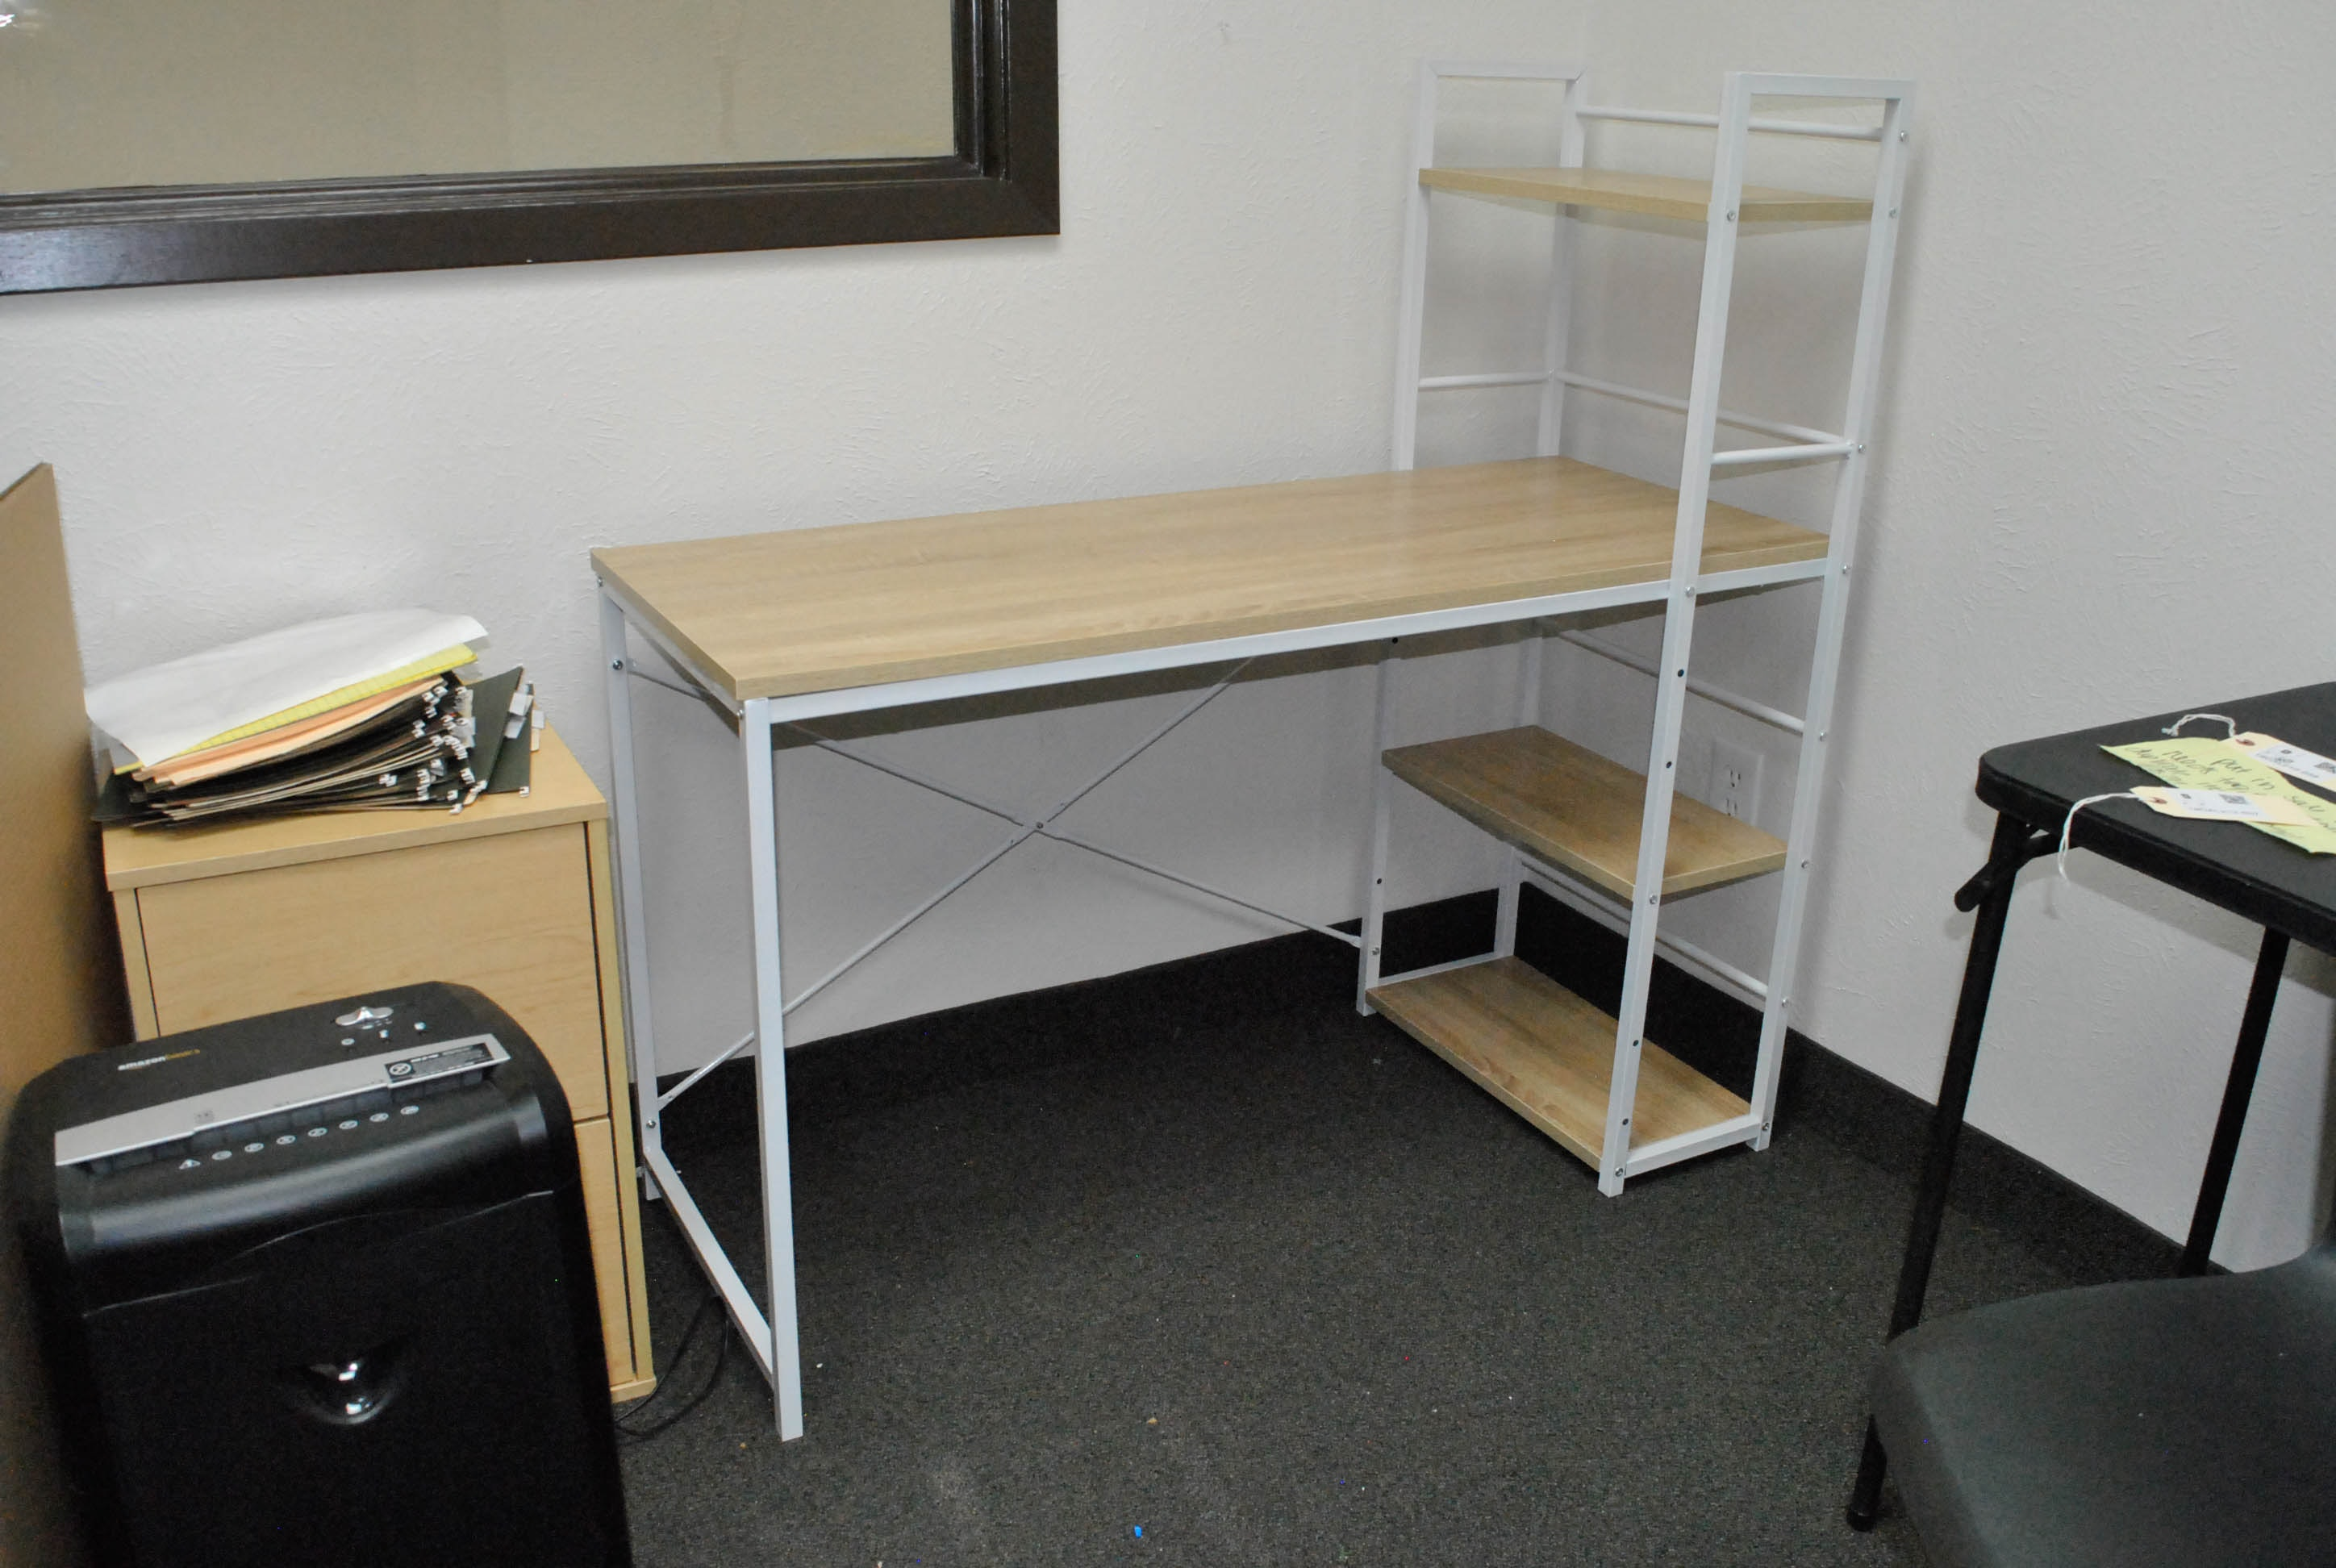 White Metal and Composite Wood Desk with Attached Shelving